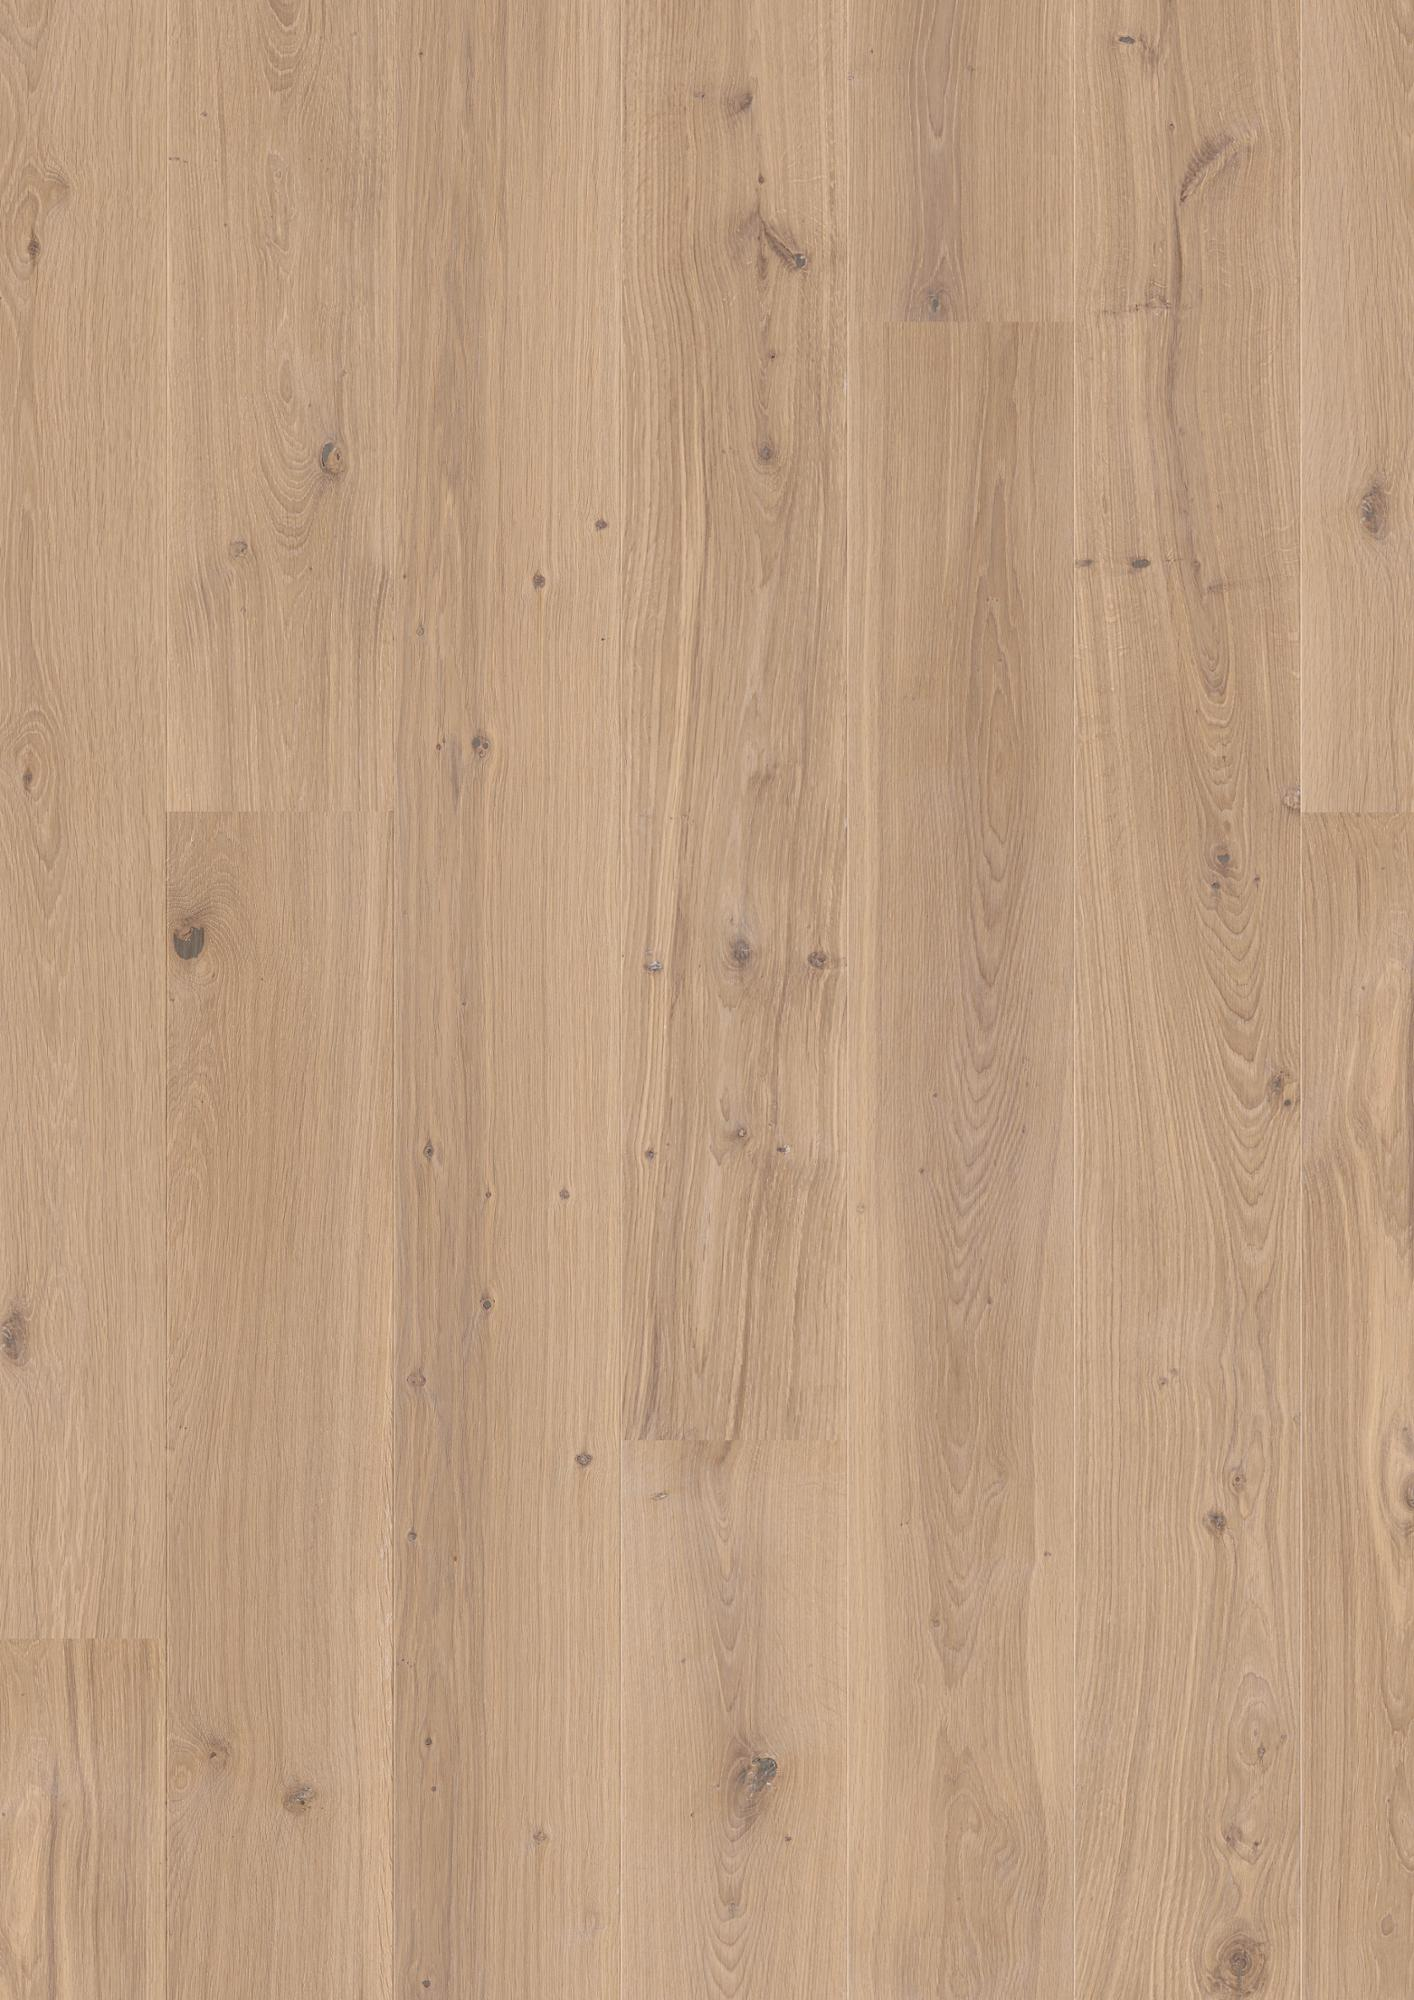 Oak Animoso white, Live Matt lacquer white, Not brushed, Beveled 2V, Plank 181, 14x181x2200mm